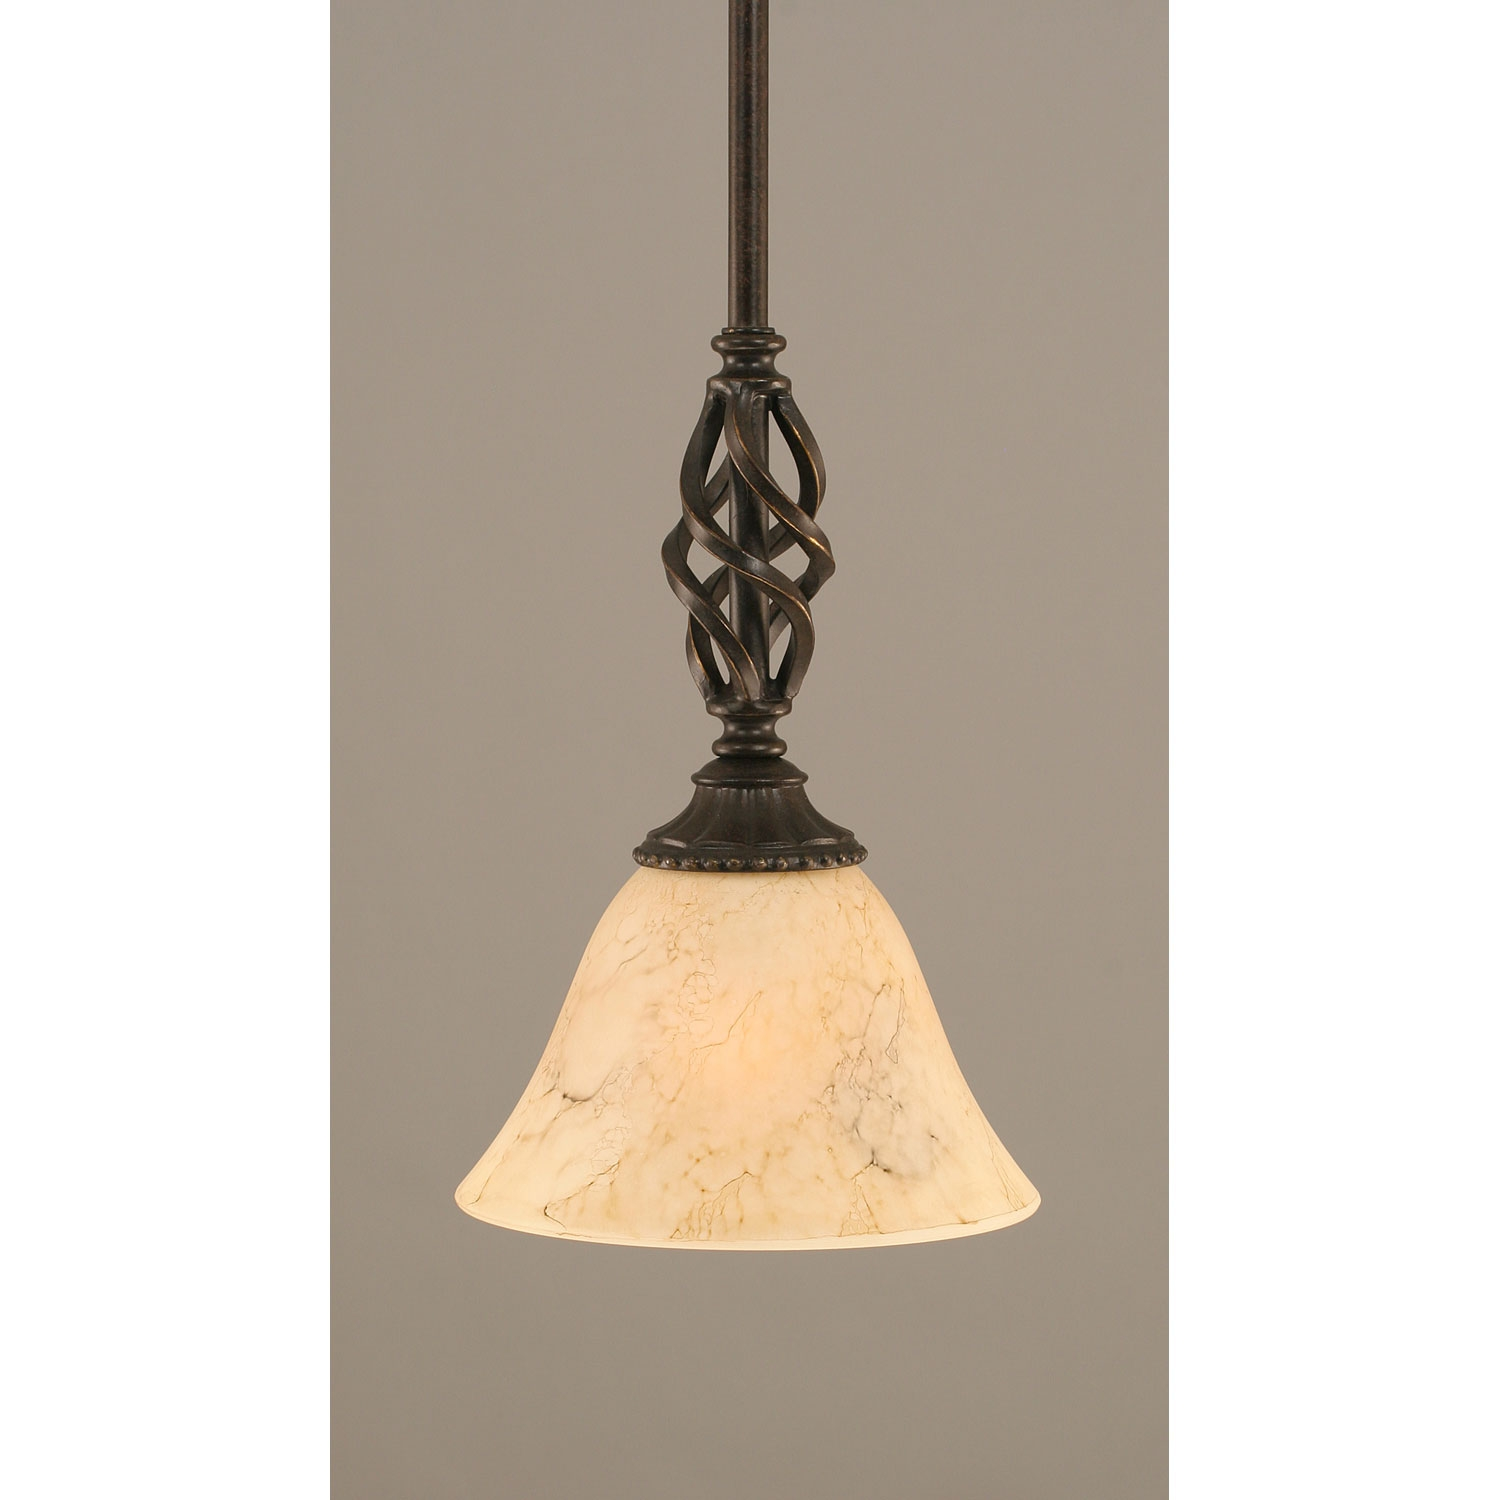 Bellacor Stem Mini Pendant Lights Add A Cheery Glow To Any Room In With Regard To Short Chandelier Lights (Image 5 of 25)